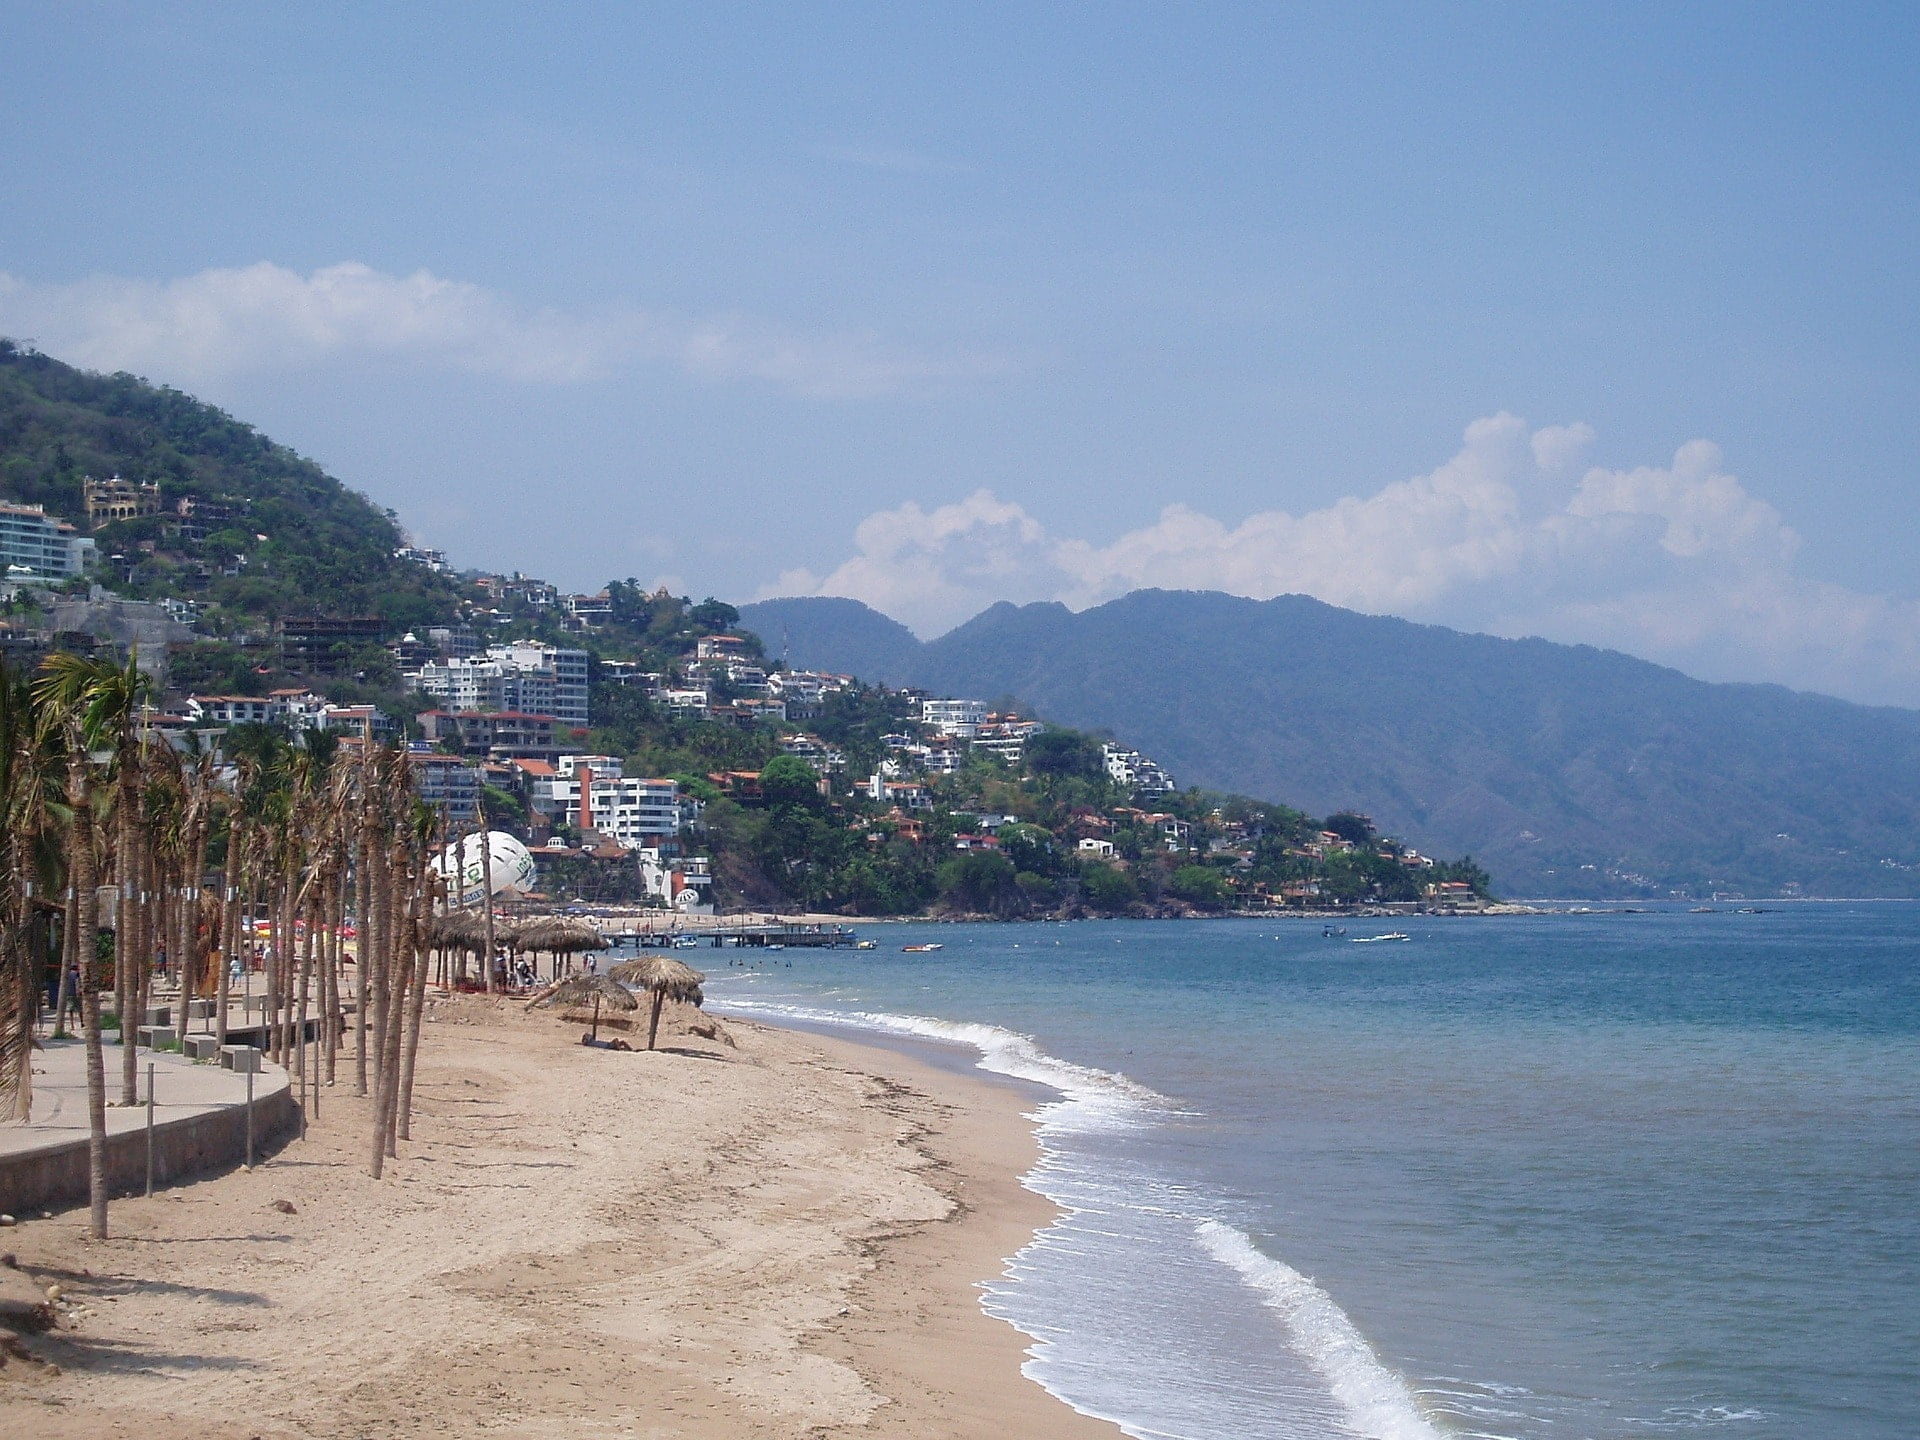 Puerto Vallarta vs Cancun - which is better?